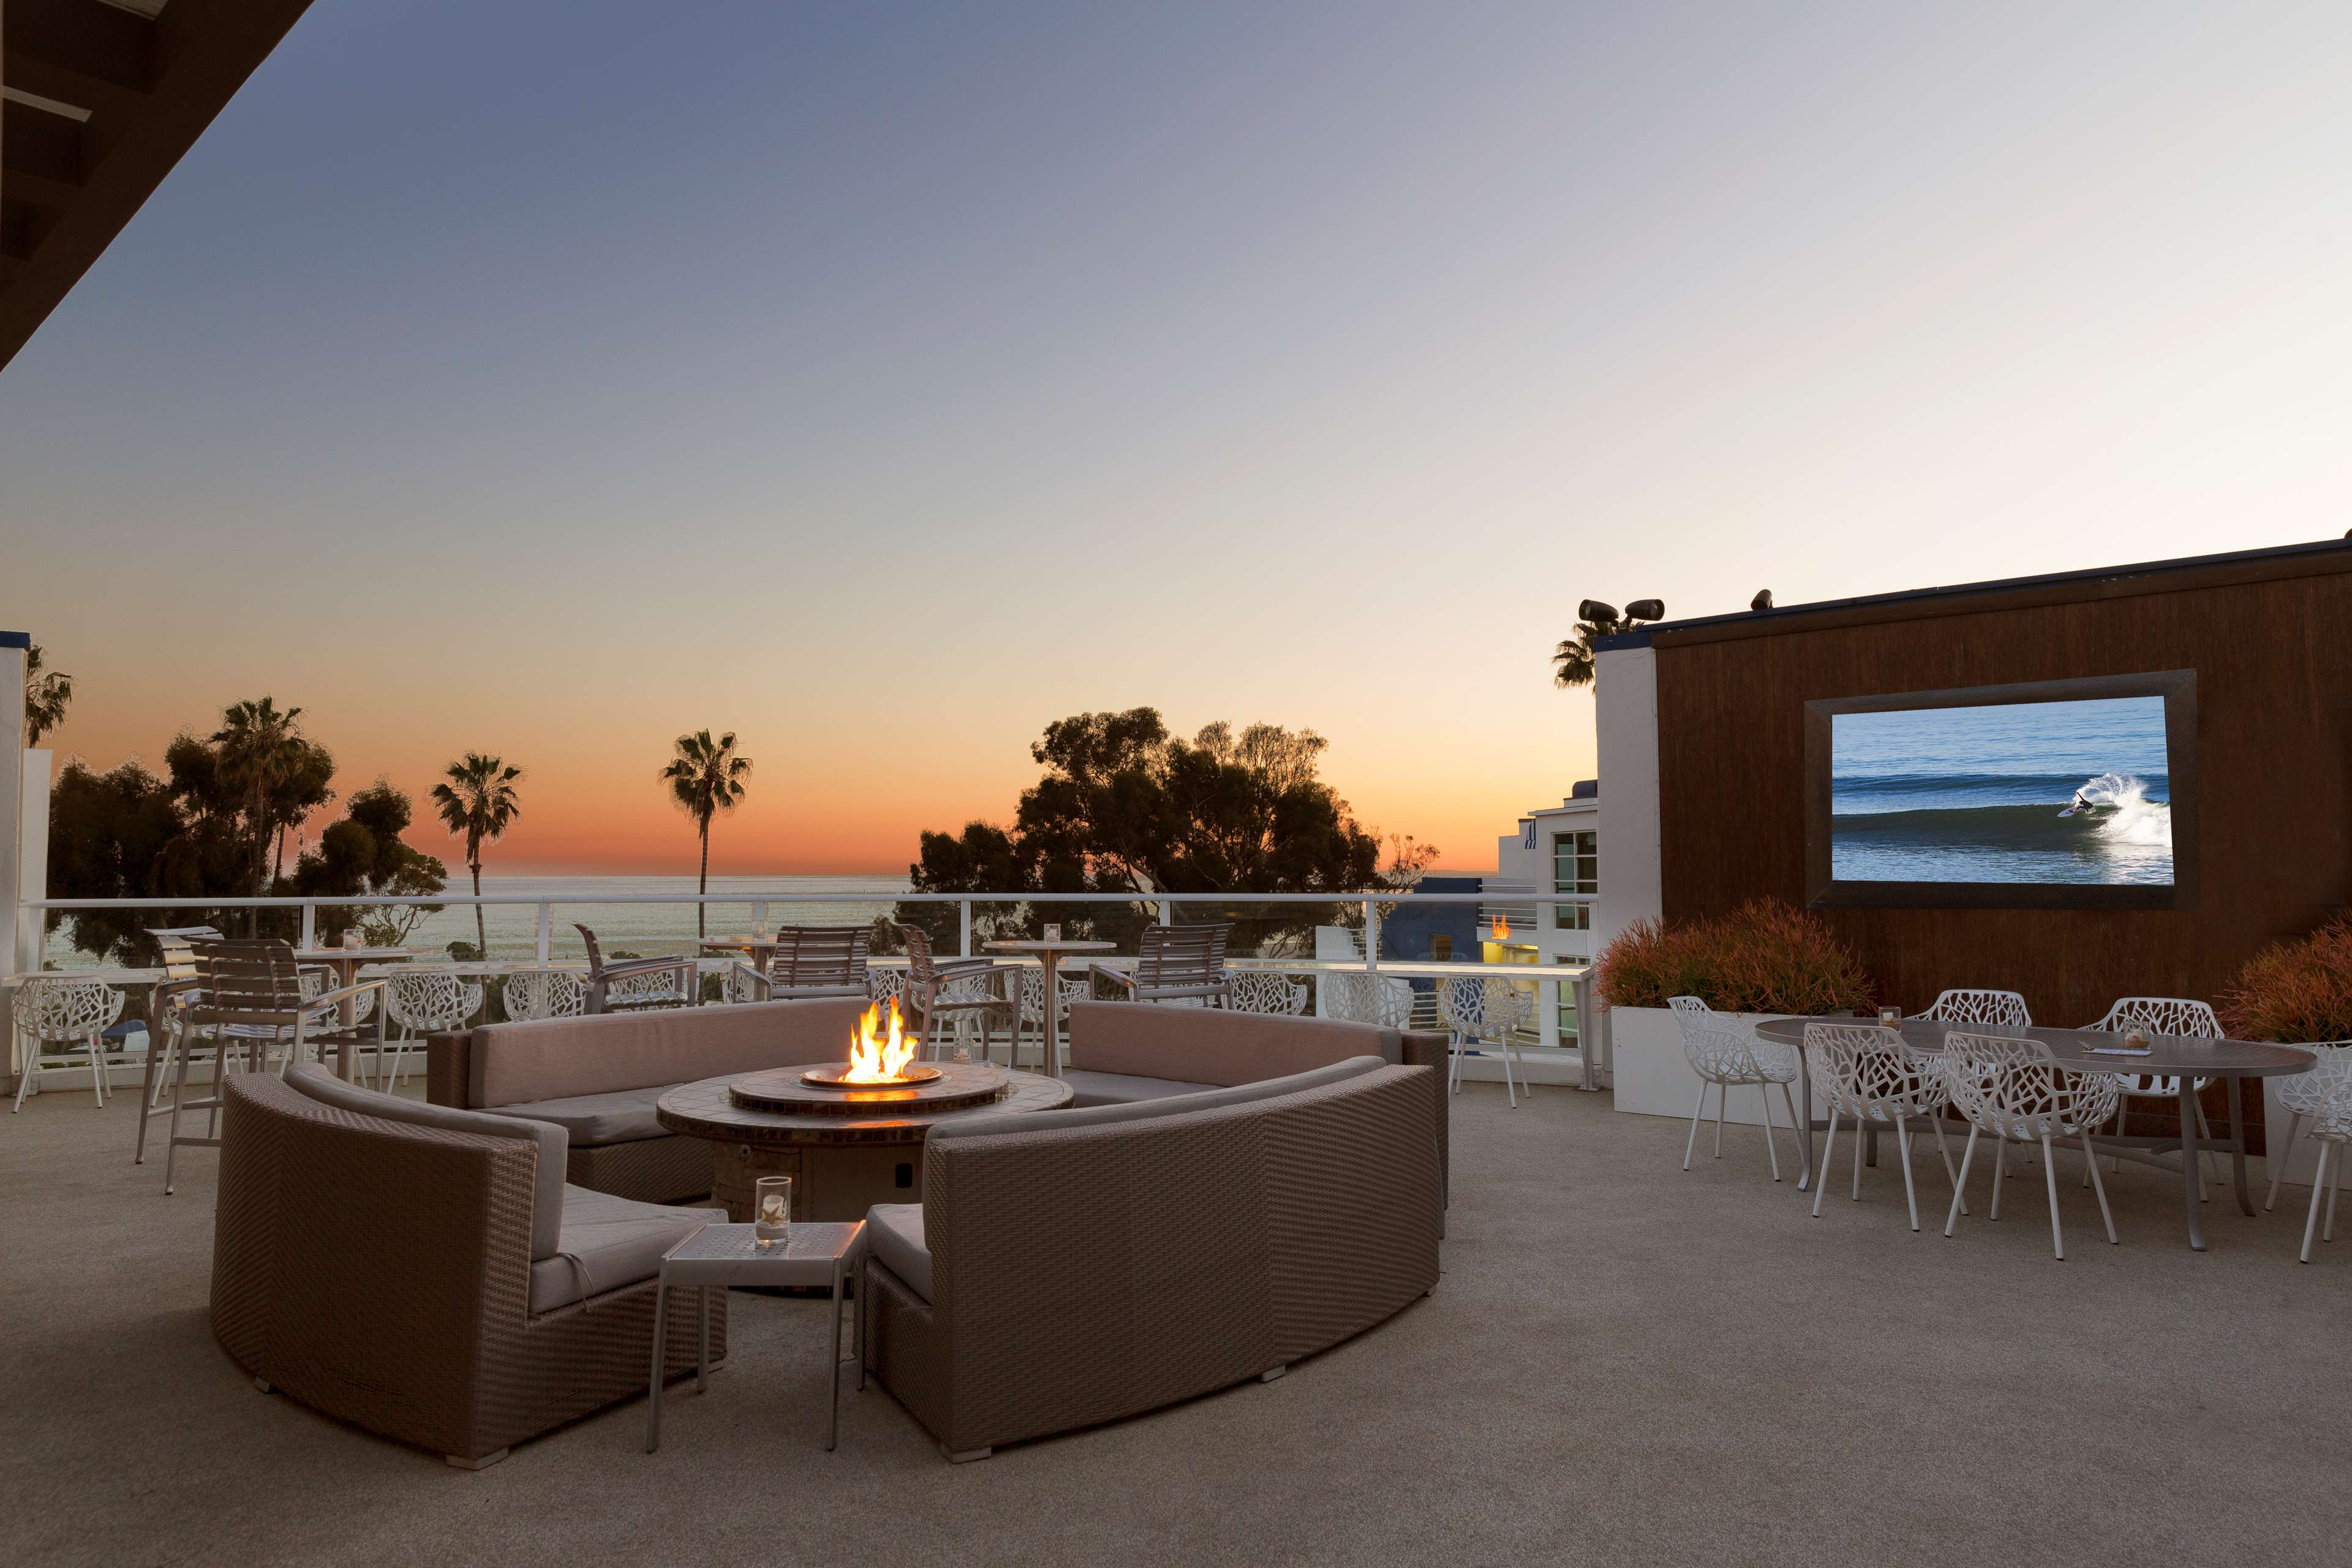 DoubleTree Suites by Hilton Hotel Doheny Beach - Dana Point image 9